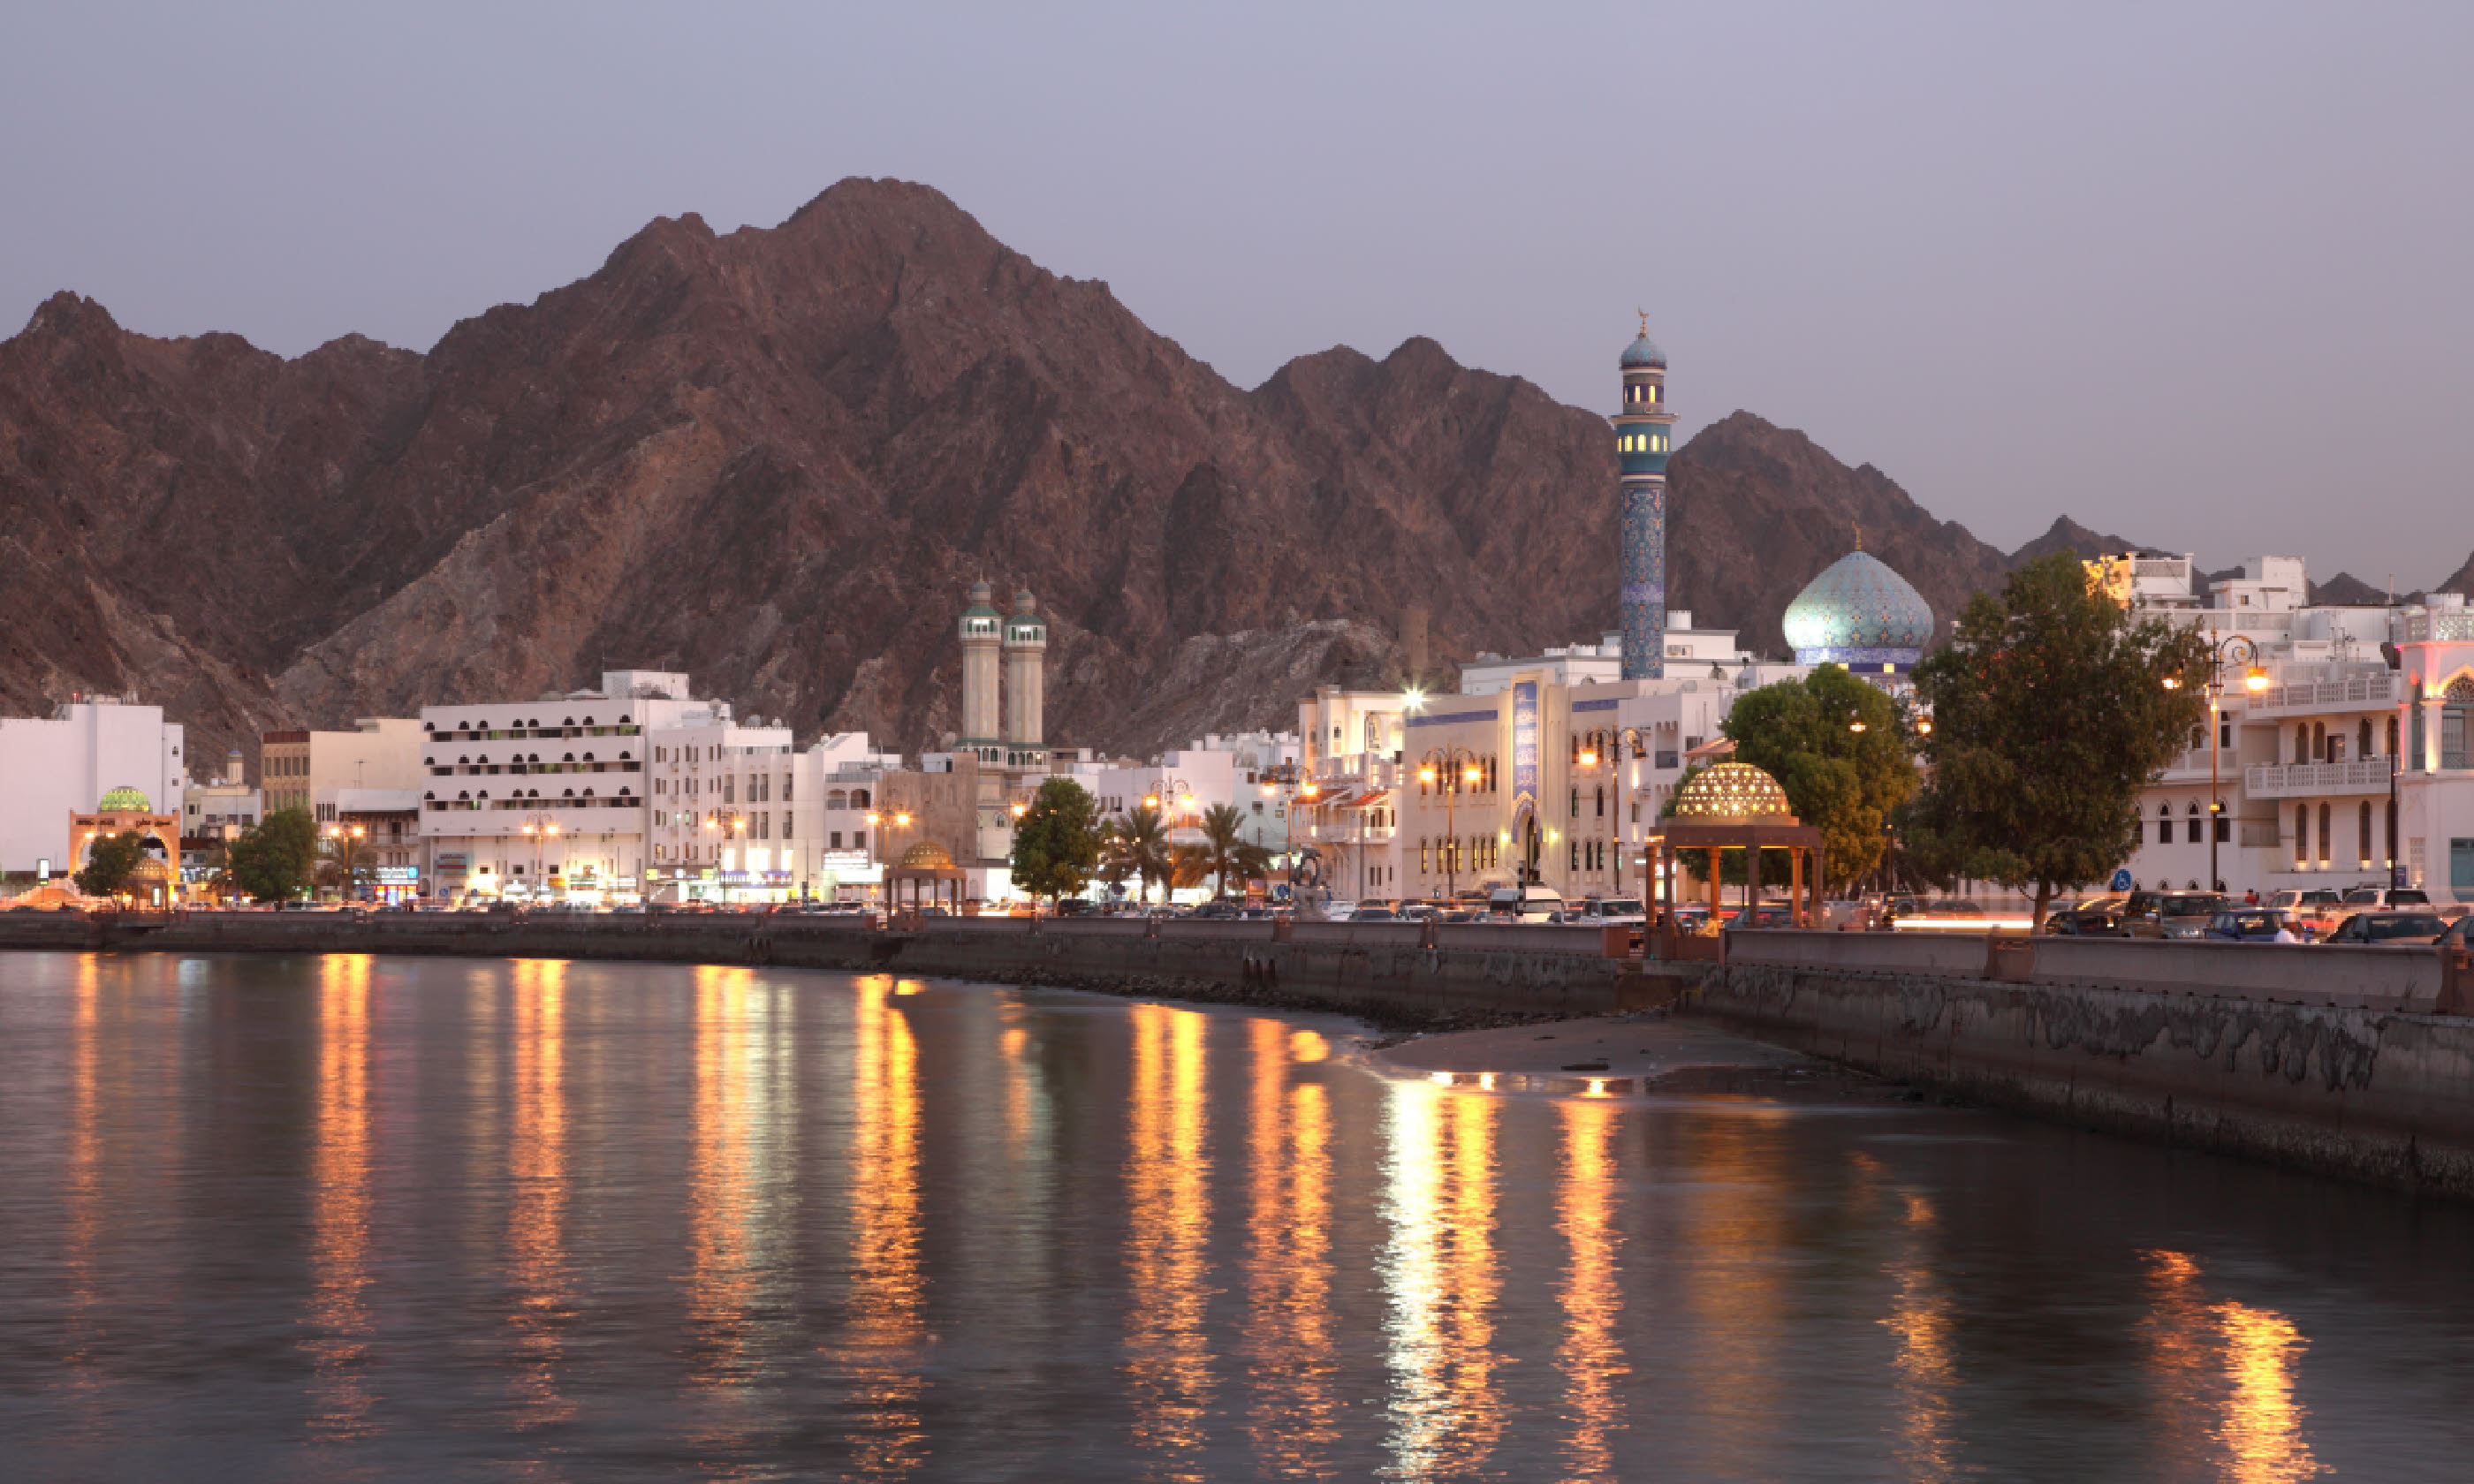 Main image: Muttrah Corniche at dusk (Shutterstock: see credit below)